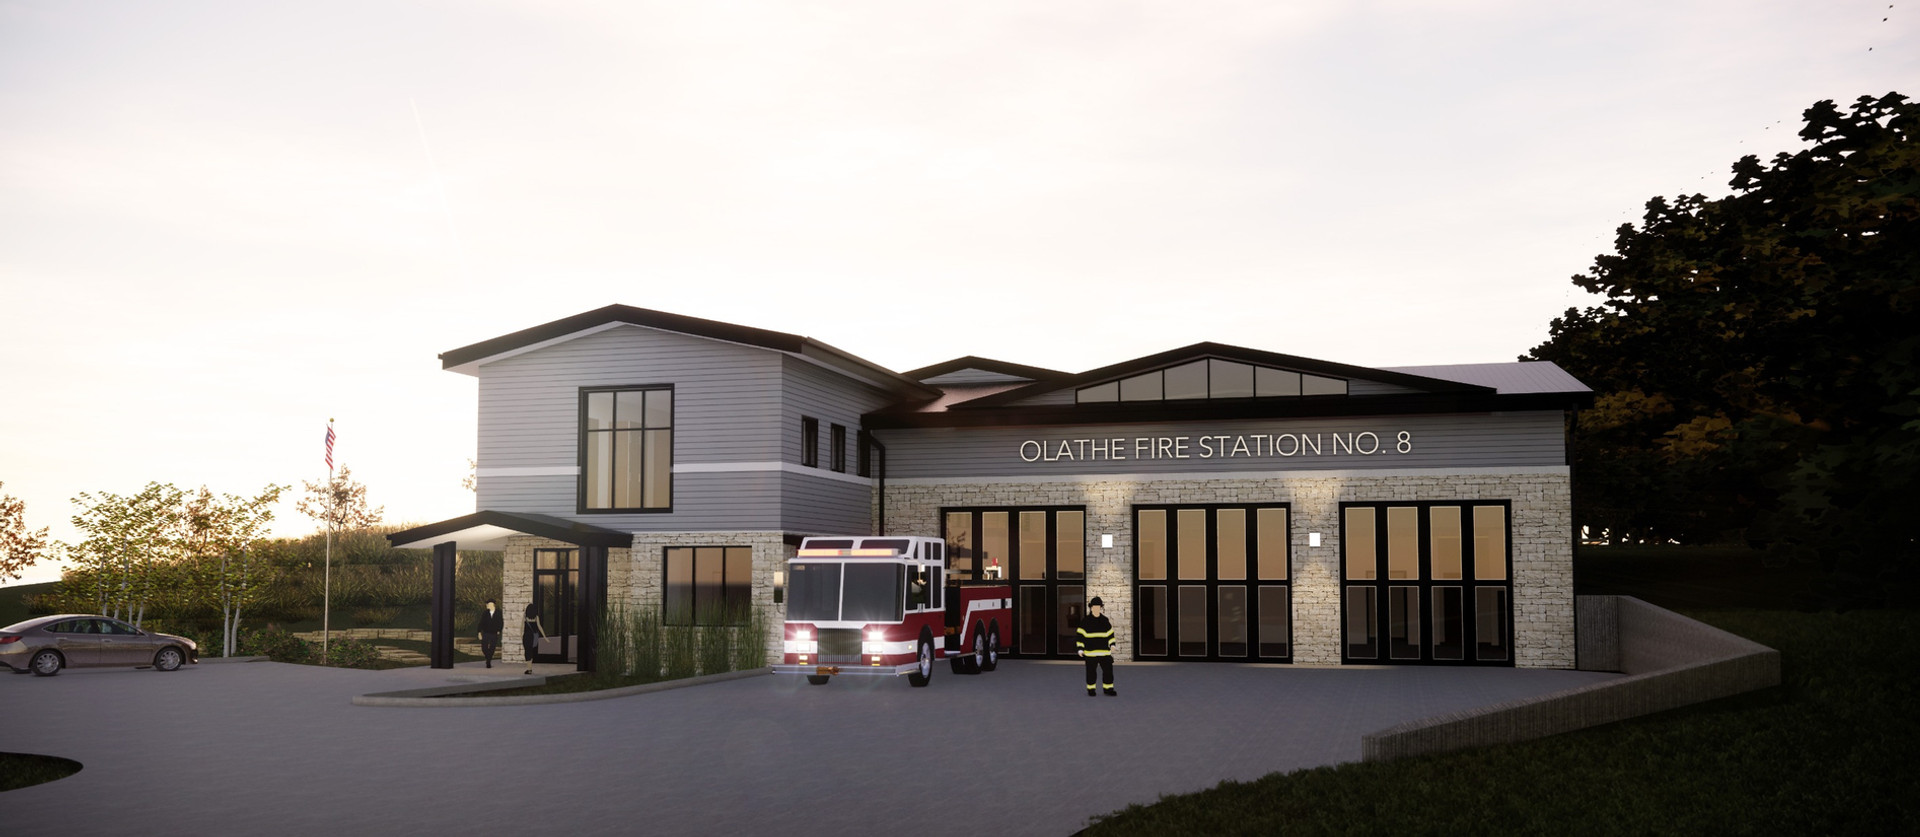 OLATHE FIRE STATION NO. 8